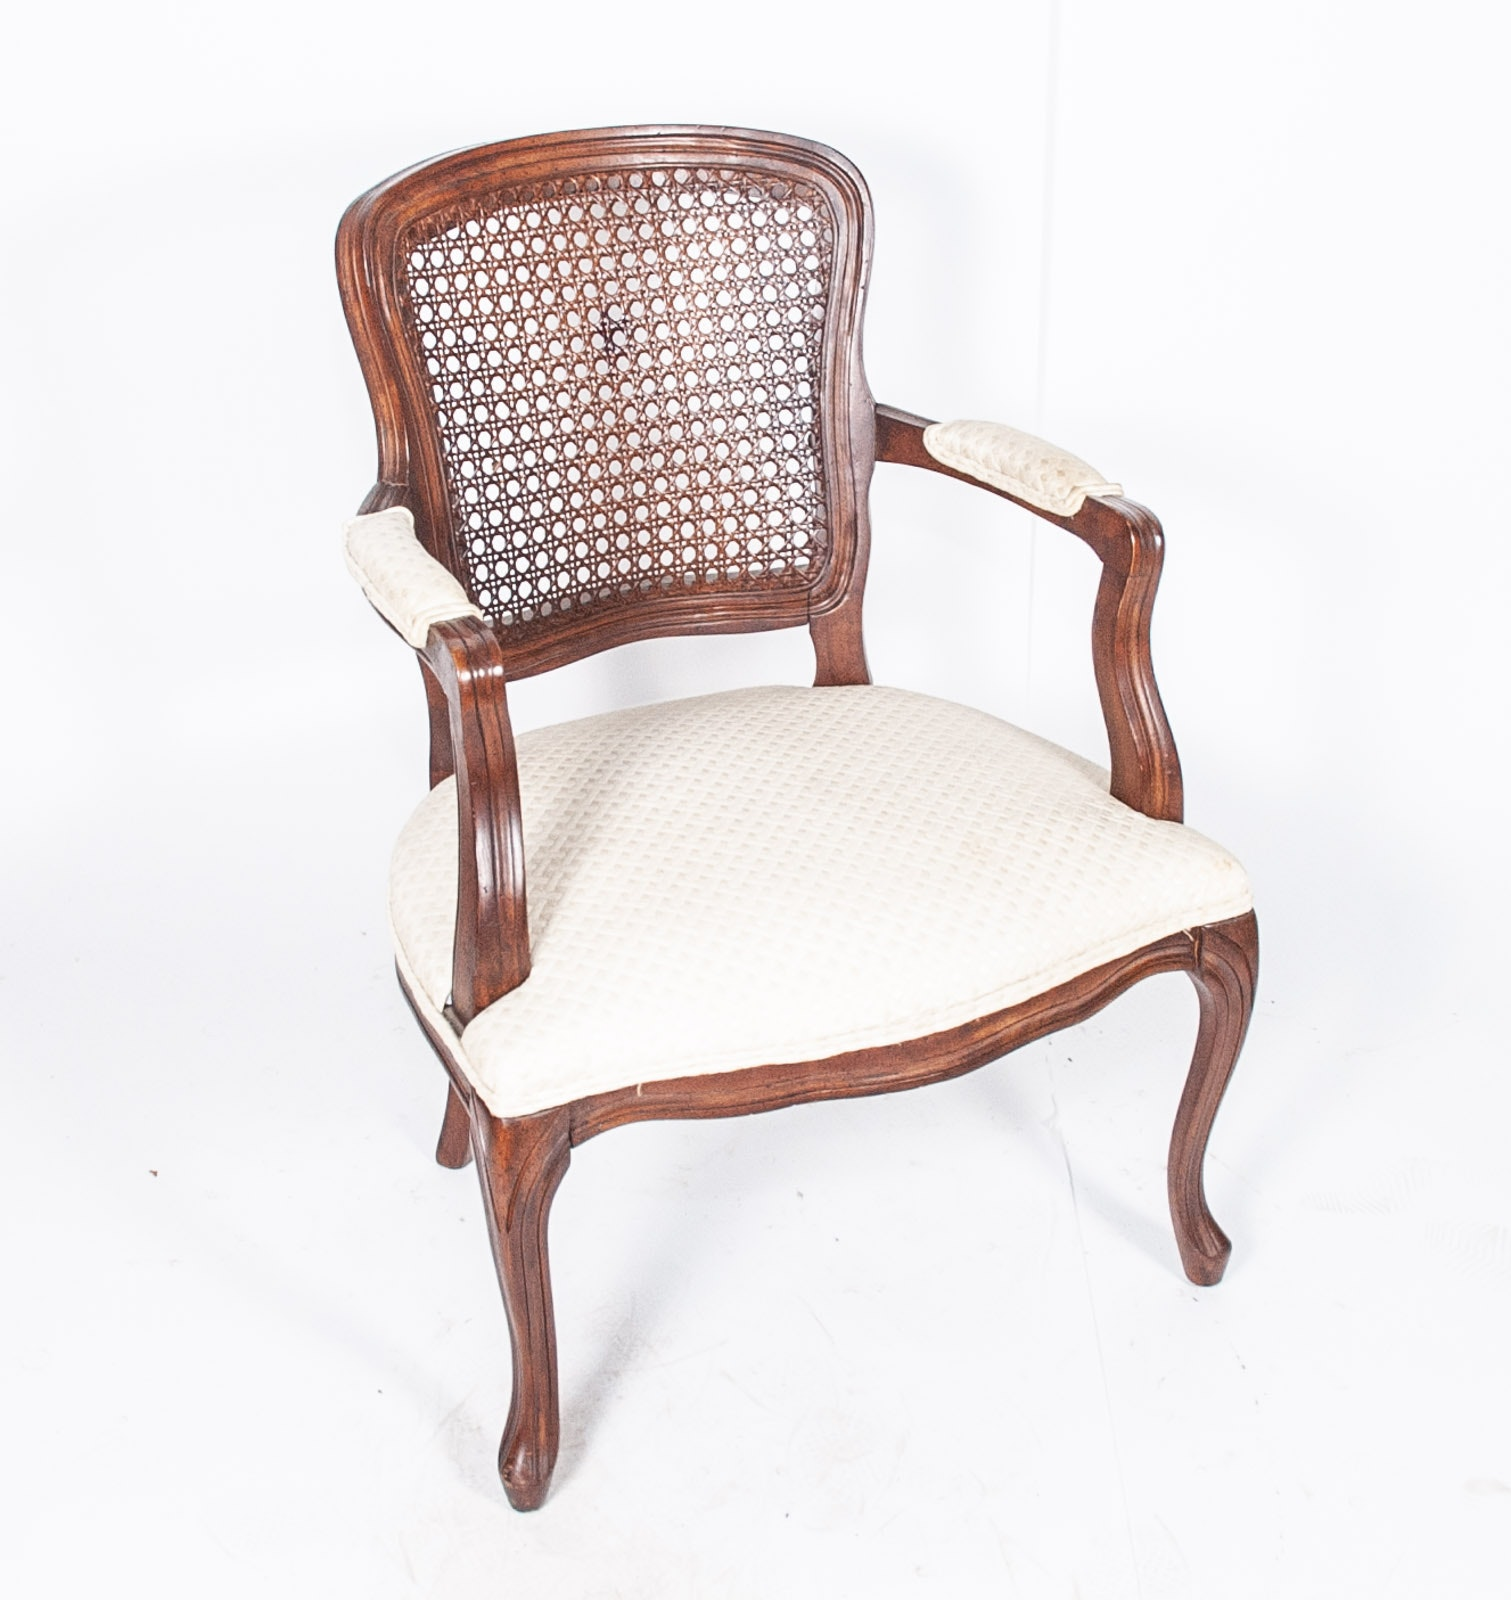 French Provincial Style Cane Back Arm Chair